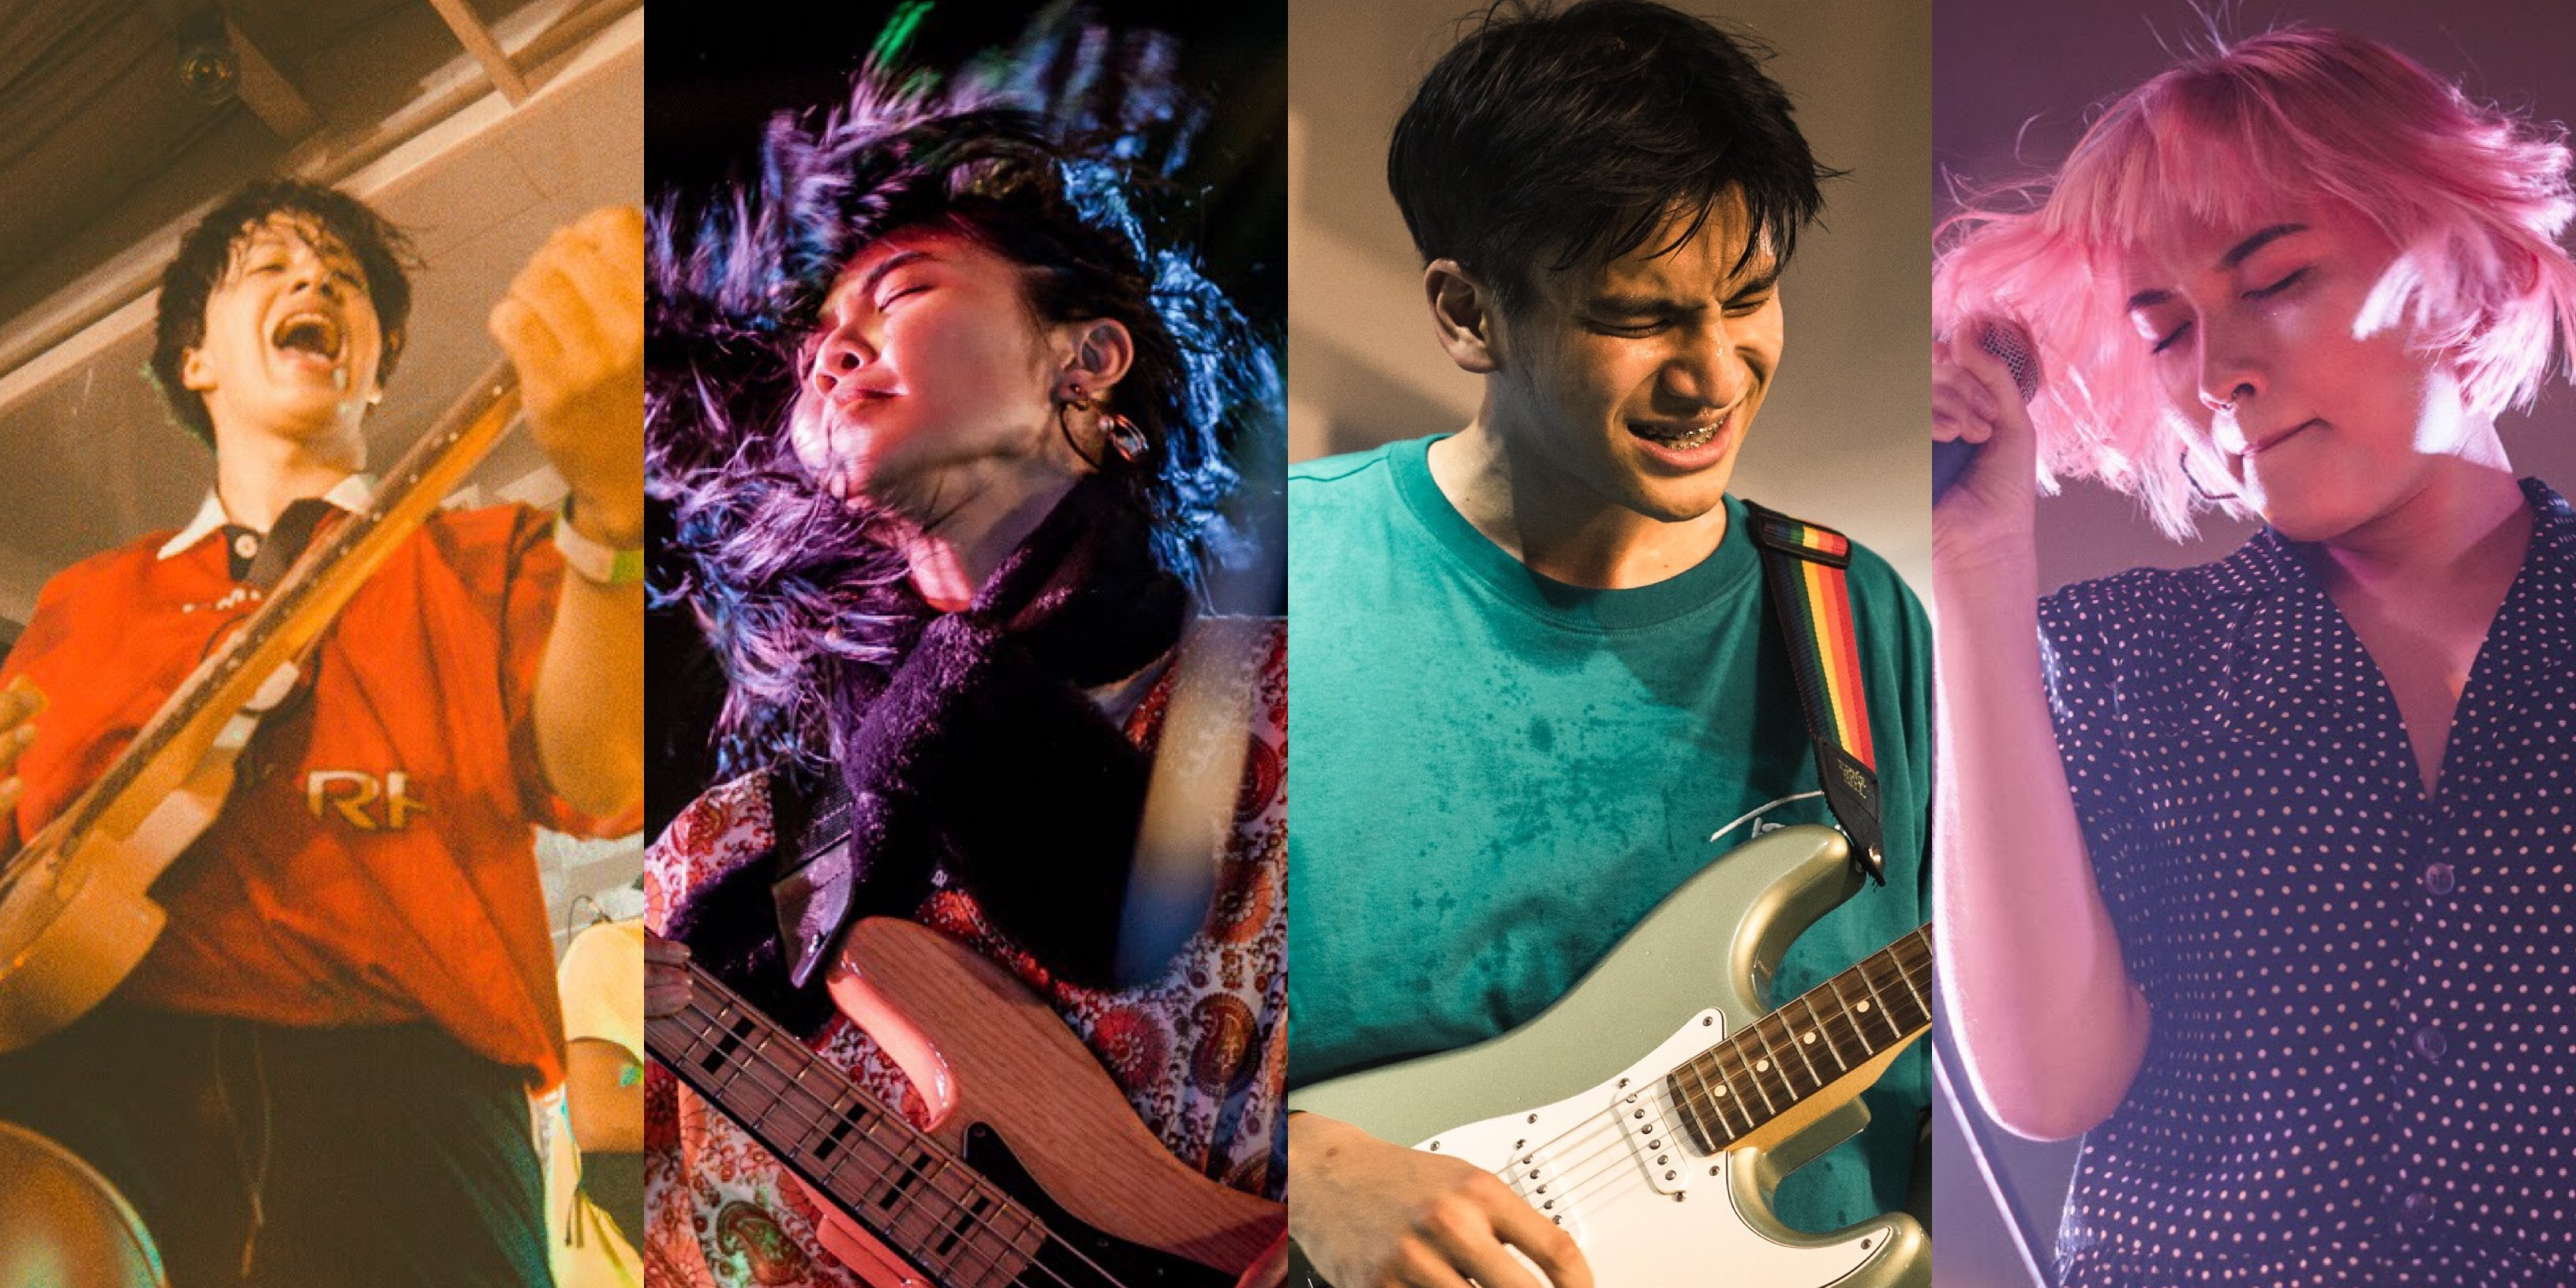 All of the Noise 2018 brings holidays early to music fans with Boy Pablo, Phum Viphurit, Elephant Gym, Sobs, and more – photo gallery